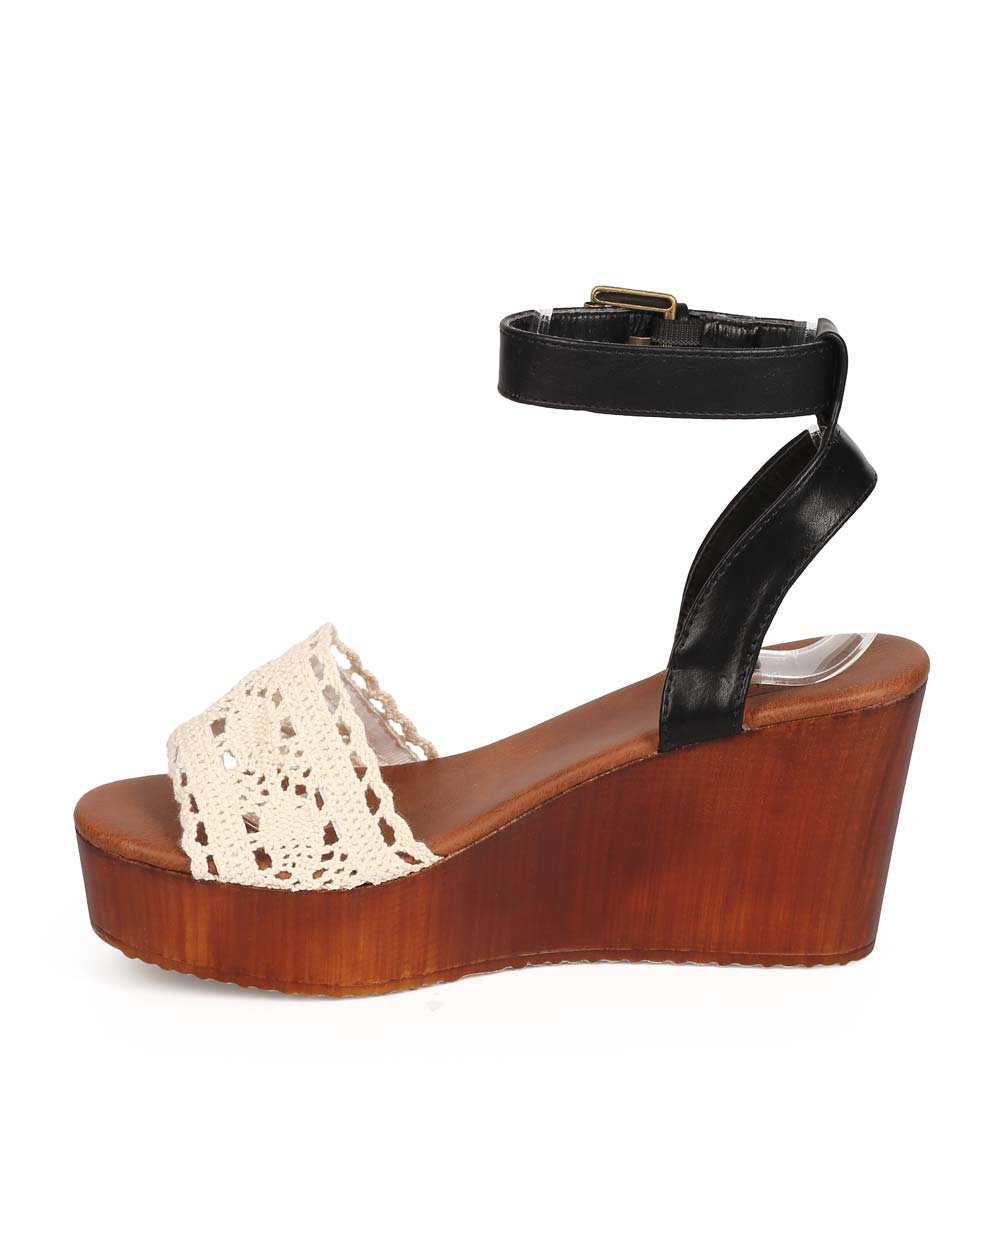 3cf96e40ddf Bumper - Bumper EB13 Women Mix Media Peep Toe Crochet Wooden Wedge Sandal -  Walmart.com